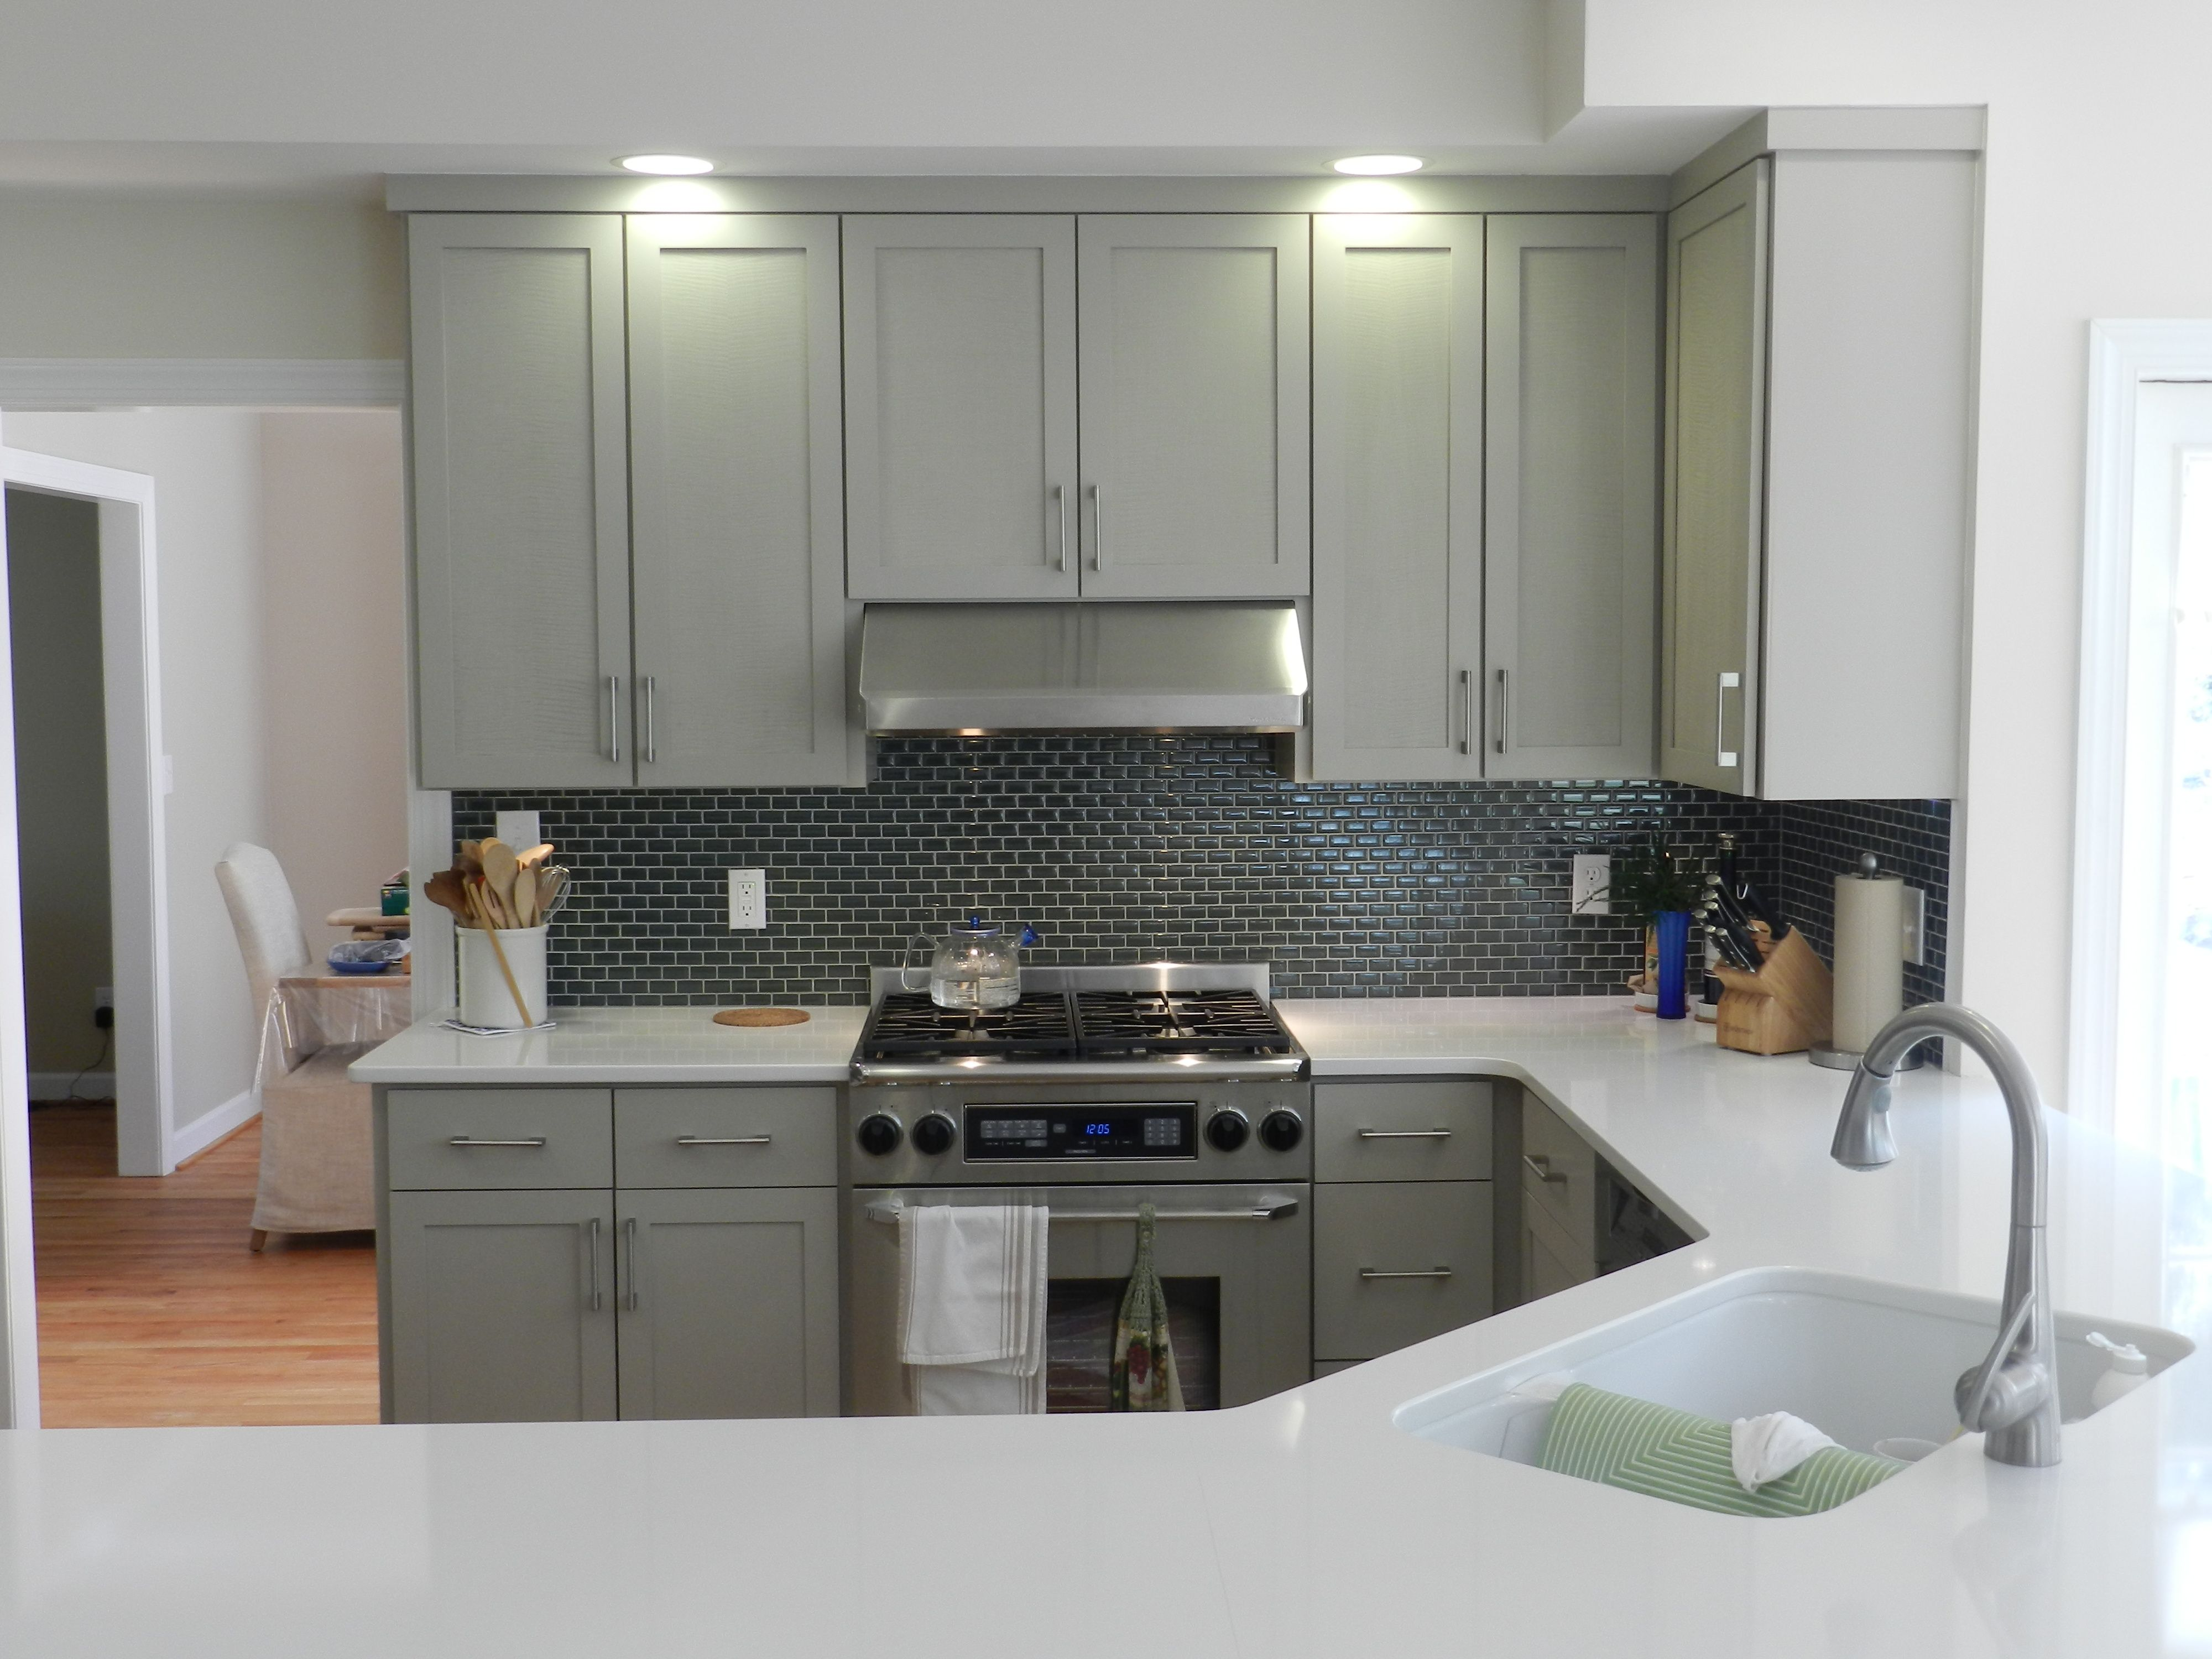 Holiday Kitchens Cabinetry Refacing, Mission Door In Custom Paint; Cambria  Quartz Counters In Whitehall